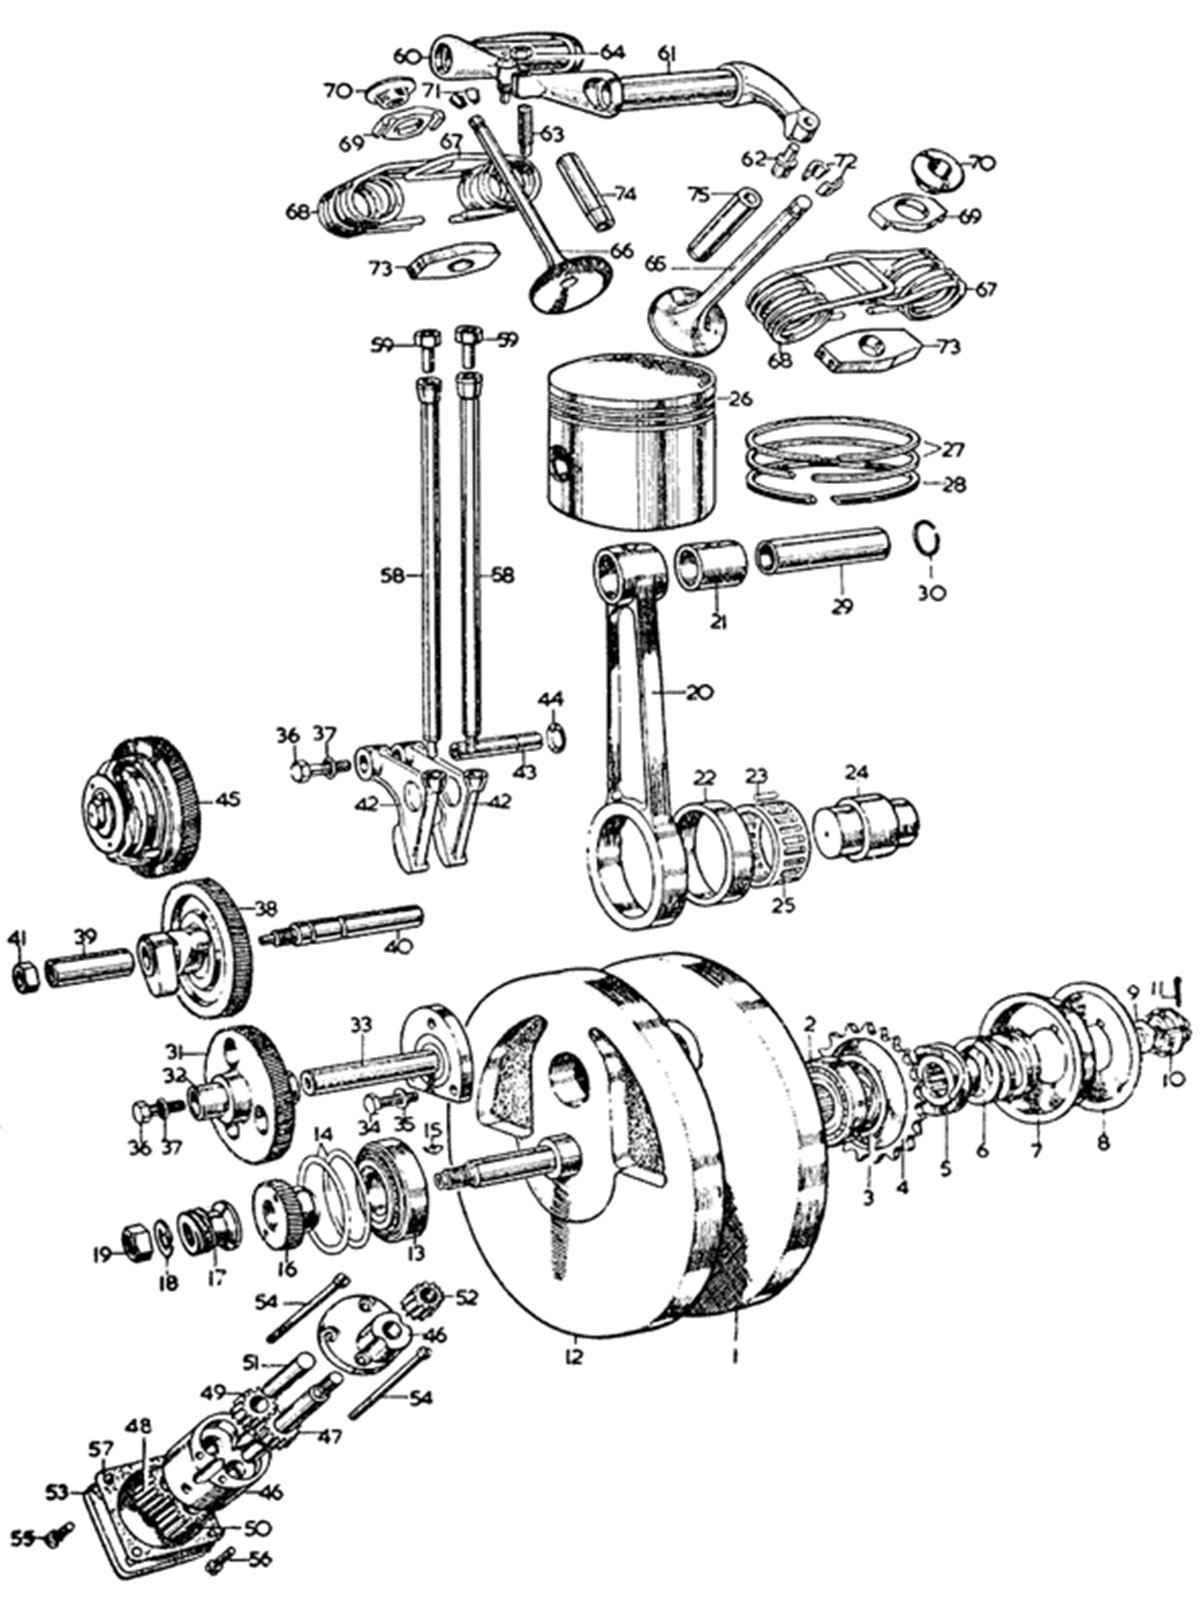 Car Engine Piston Diagram Velocette Classics Engine Expanded Timing Side Flywheel Of Car Engine Piston Diagram